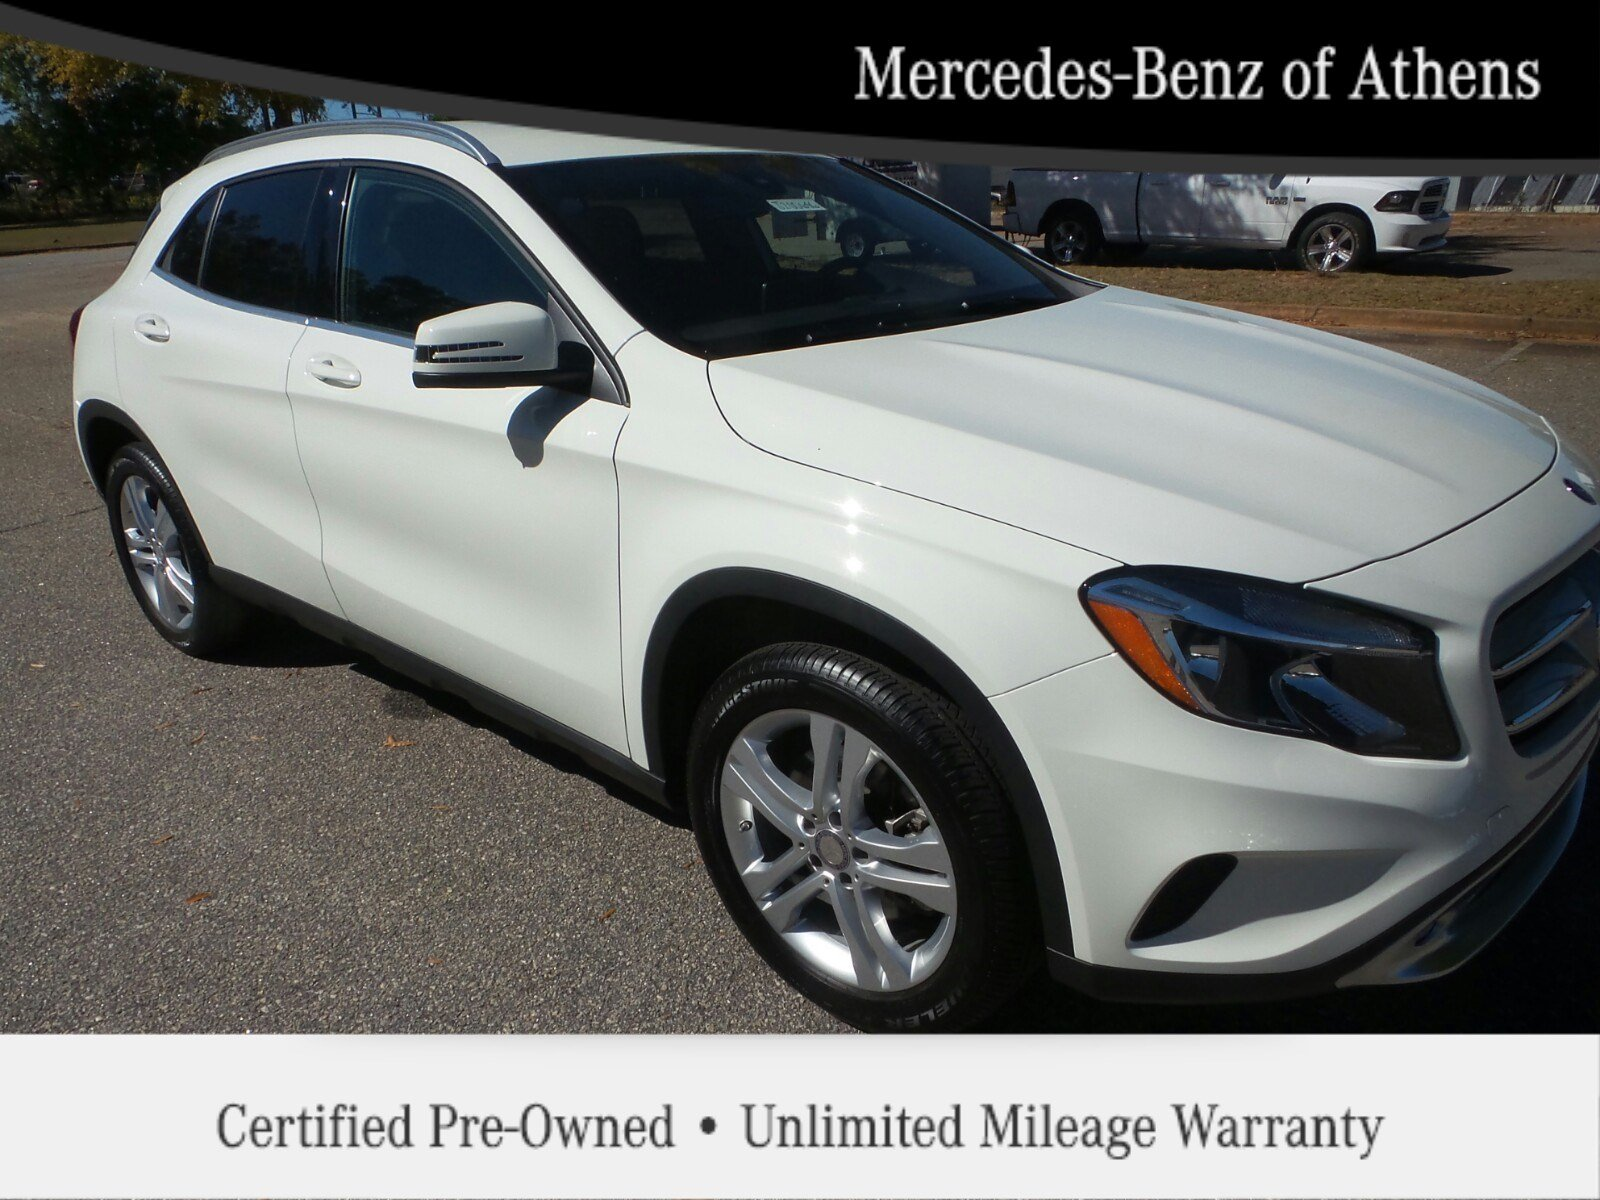 certified pre owned 2016 mercedes benz gla gla250 suv in athens j200646 mercedes benz of athens. Black Bedroom Furniture Sets. Home Design Ideas